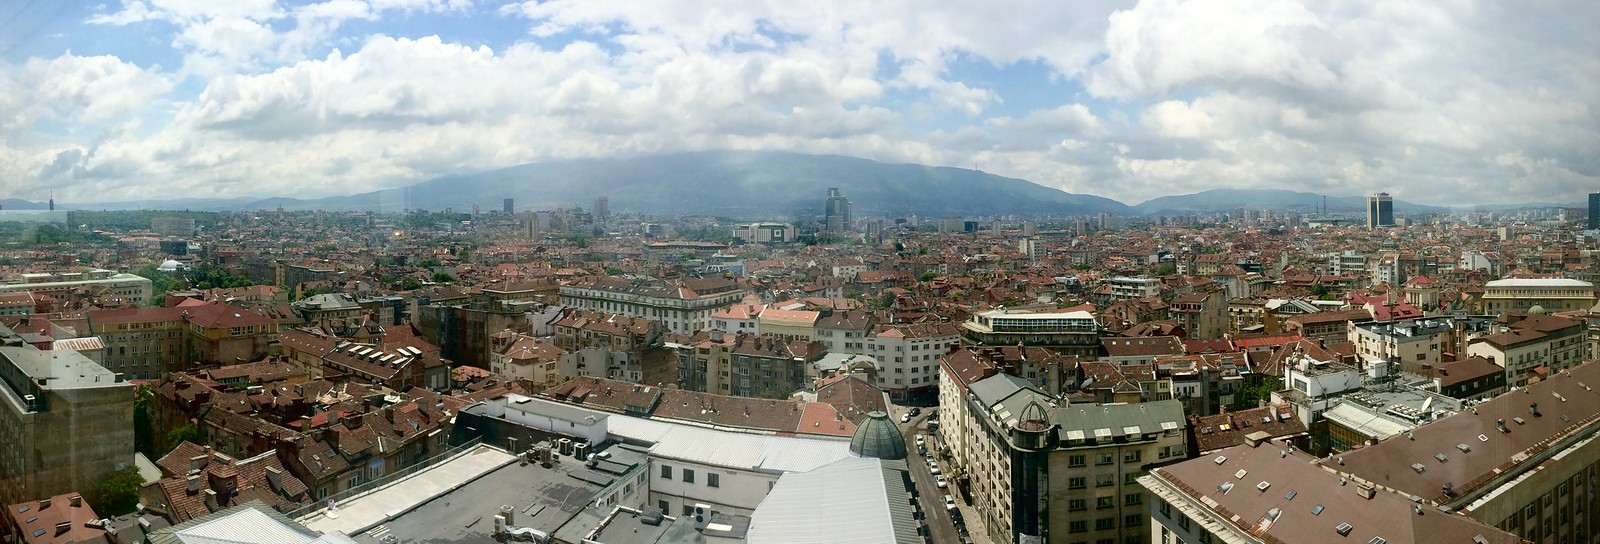 201705 - Balkans - View from Lunch of Sofia - 16 of 101 - Sofia - Oborishte - Sofia, May 21, 2017